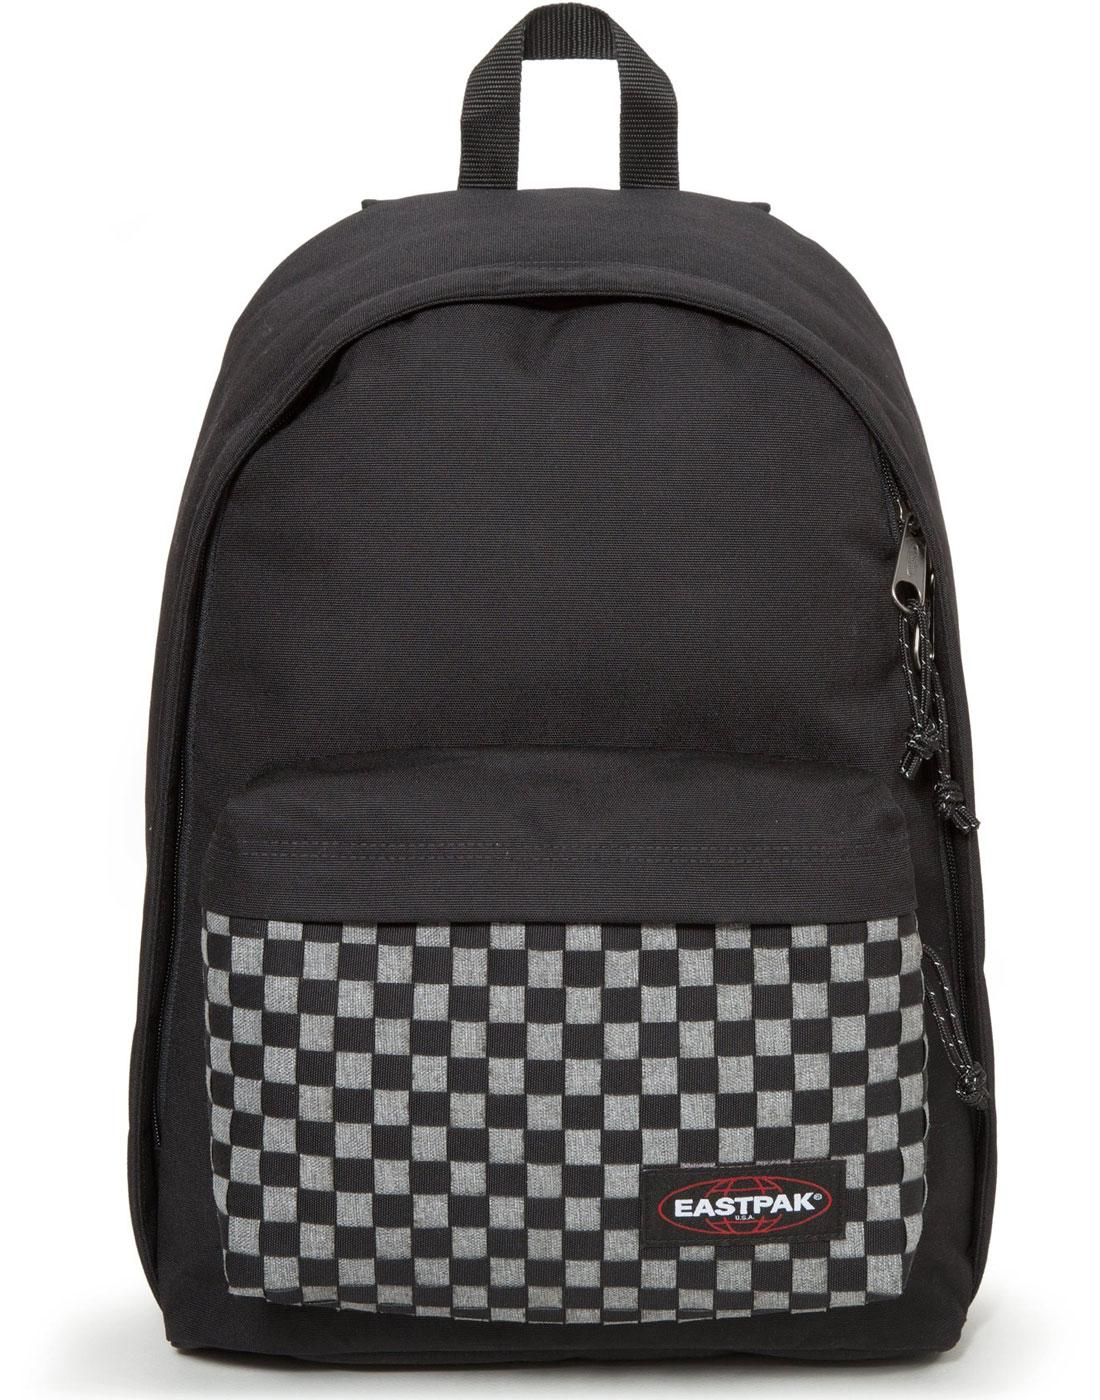 Out of Office EASTPAK Mod Ska Check Backpack B/G